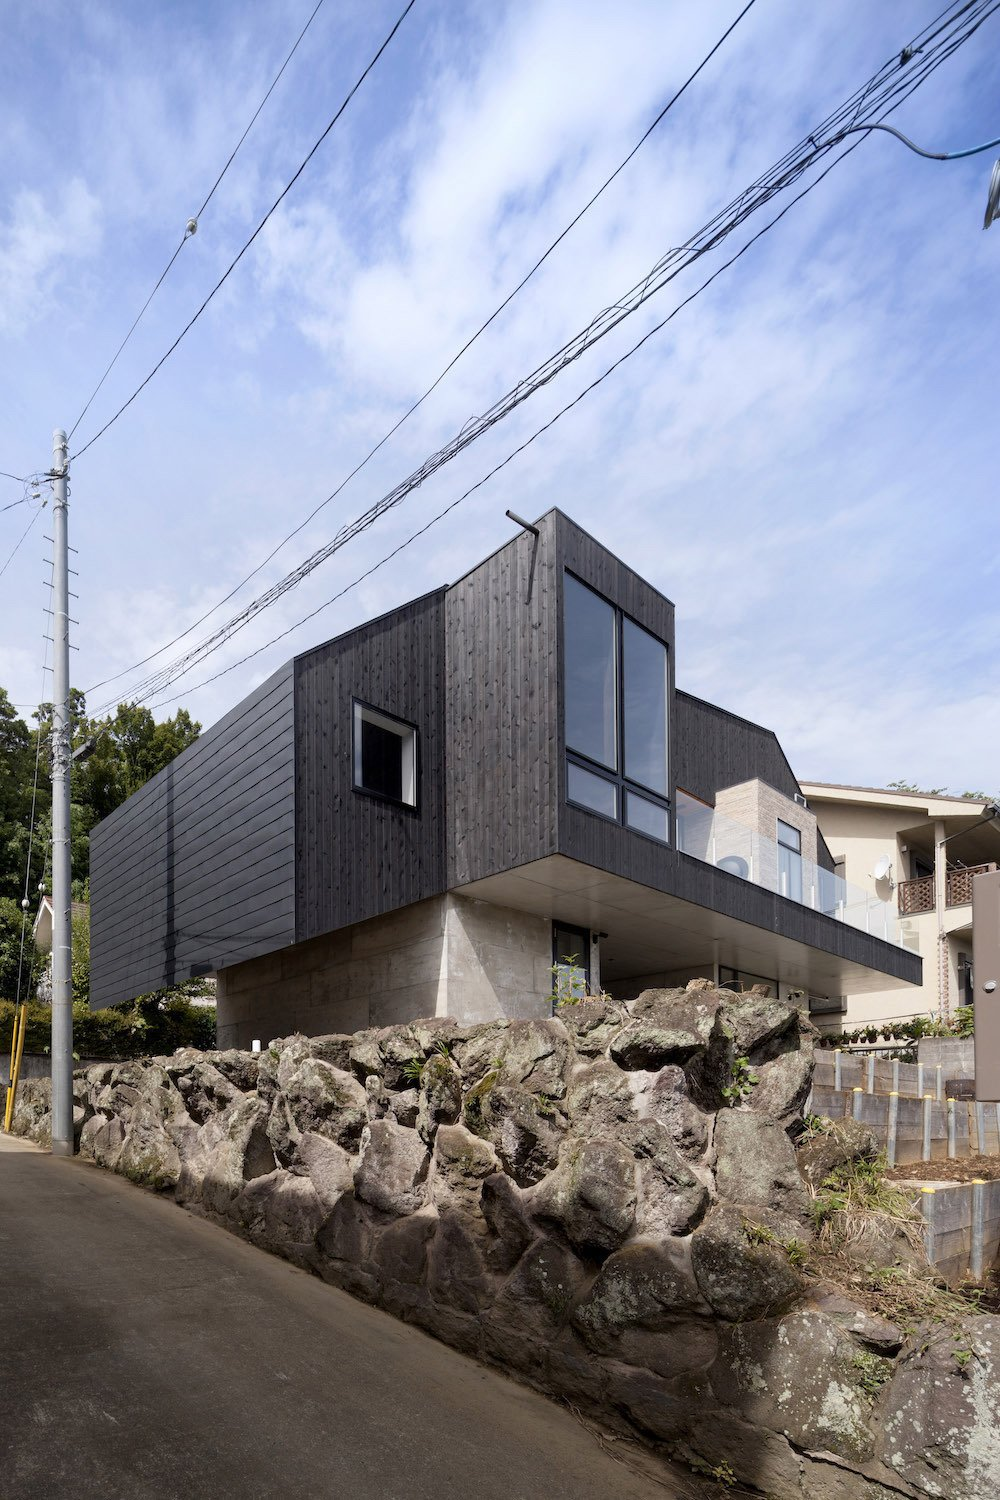 Exterior, Glass Siding Material, House Building Type, and Wood Siding Material  Best Photos from Hayfe by CUBO design architect